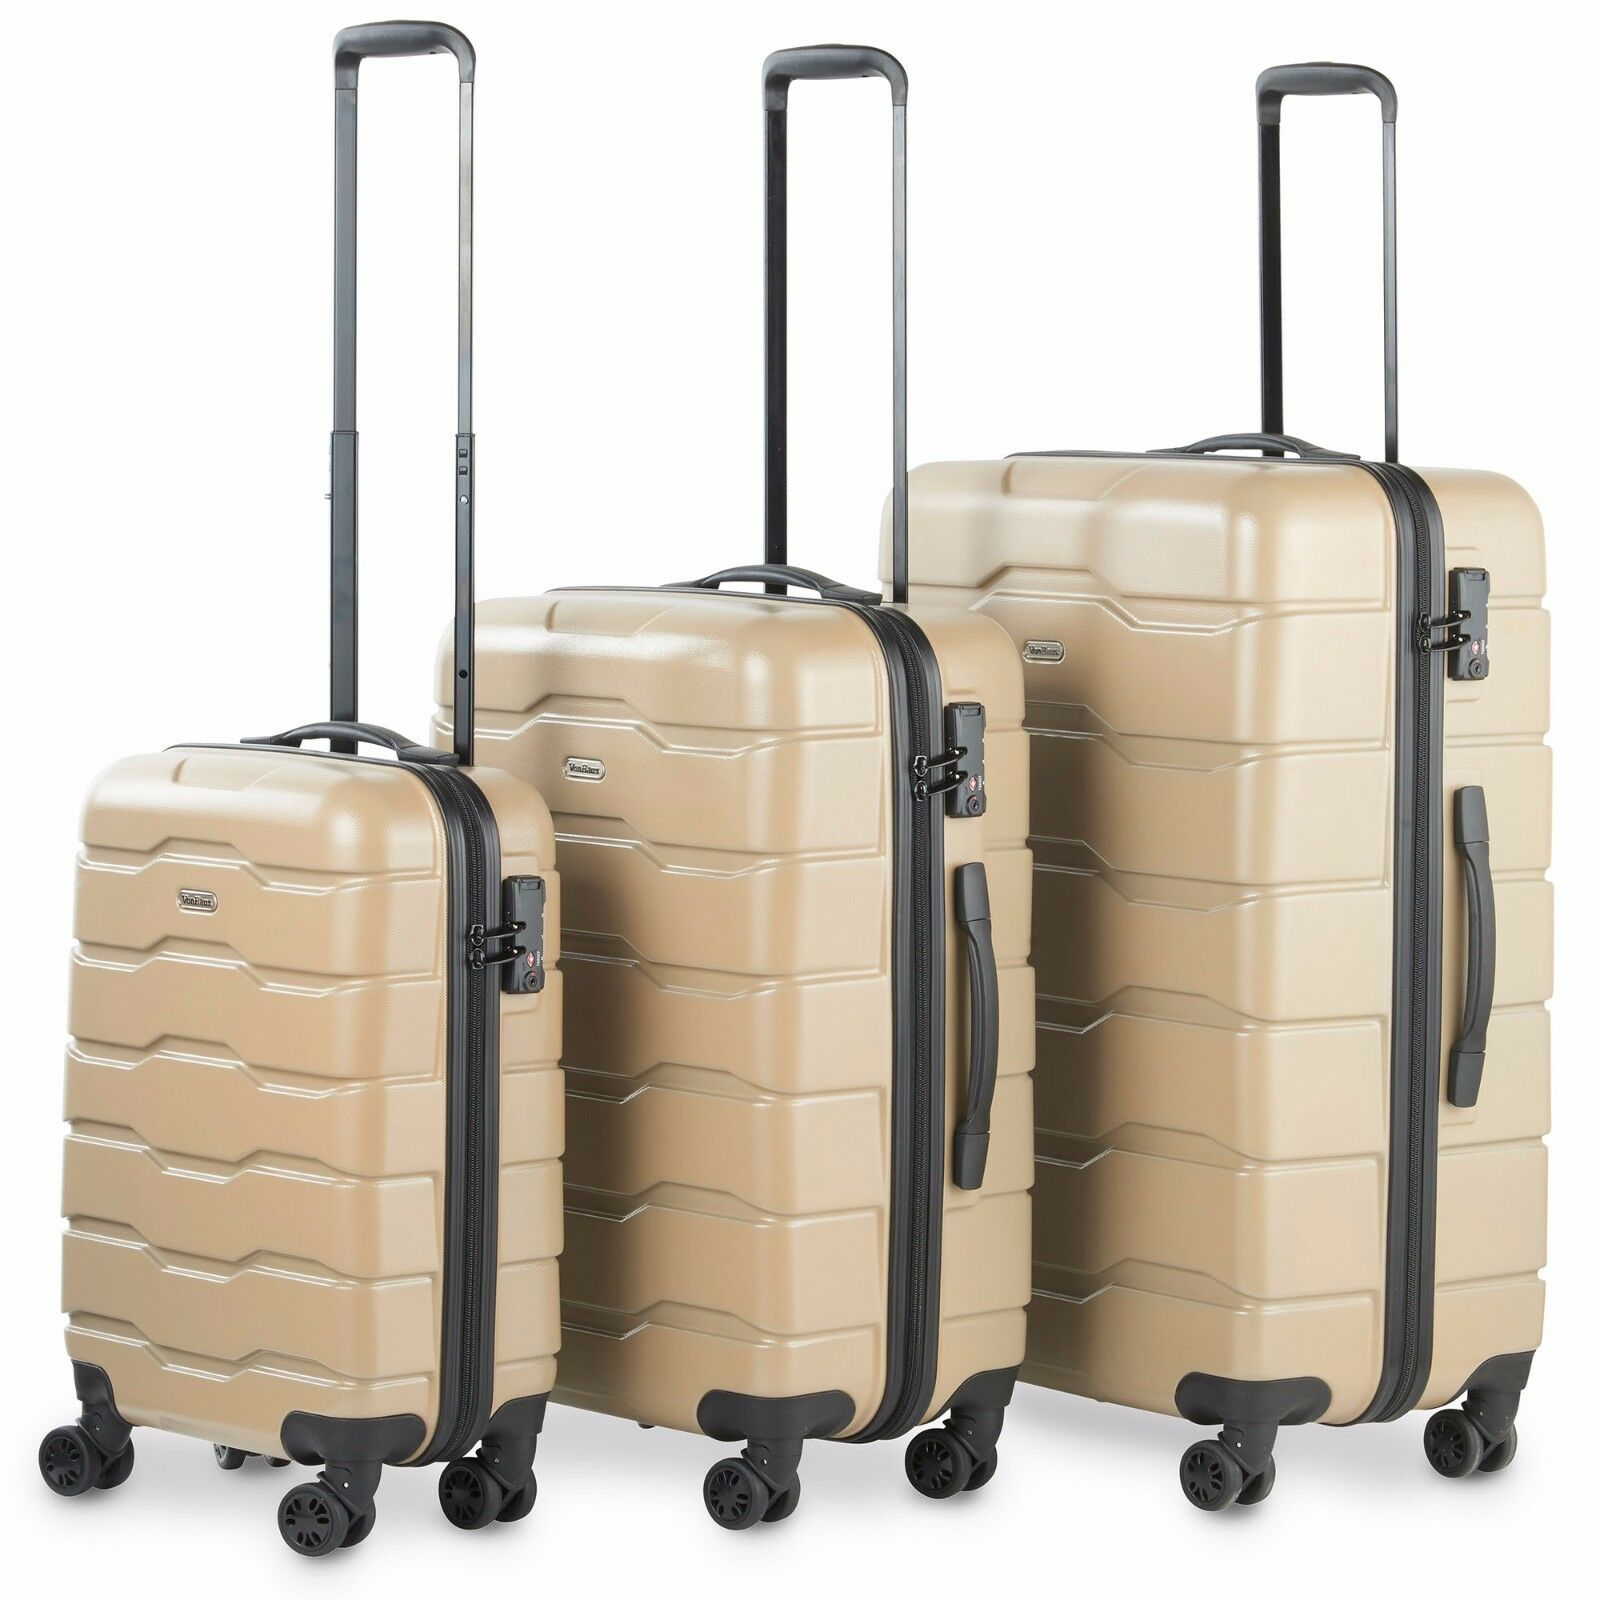 VonHaus Champagne 3-Piece Luggage Set Lightweight Travel Har